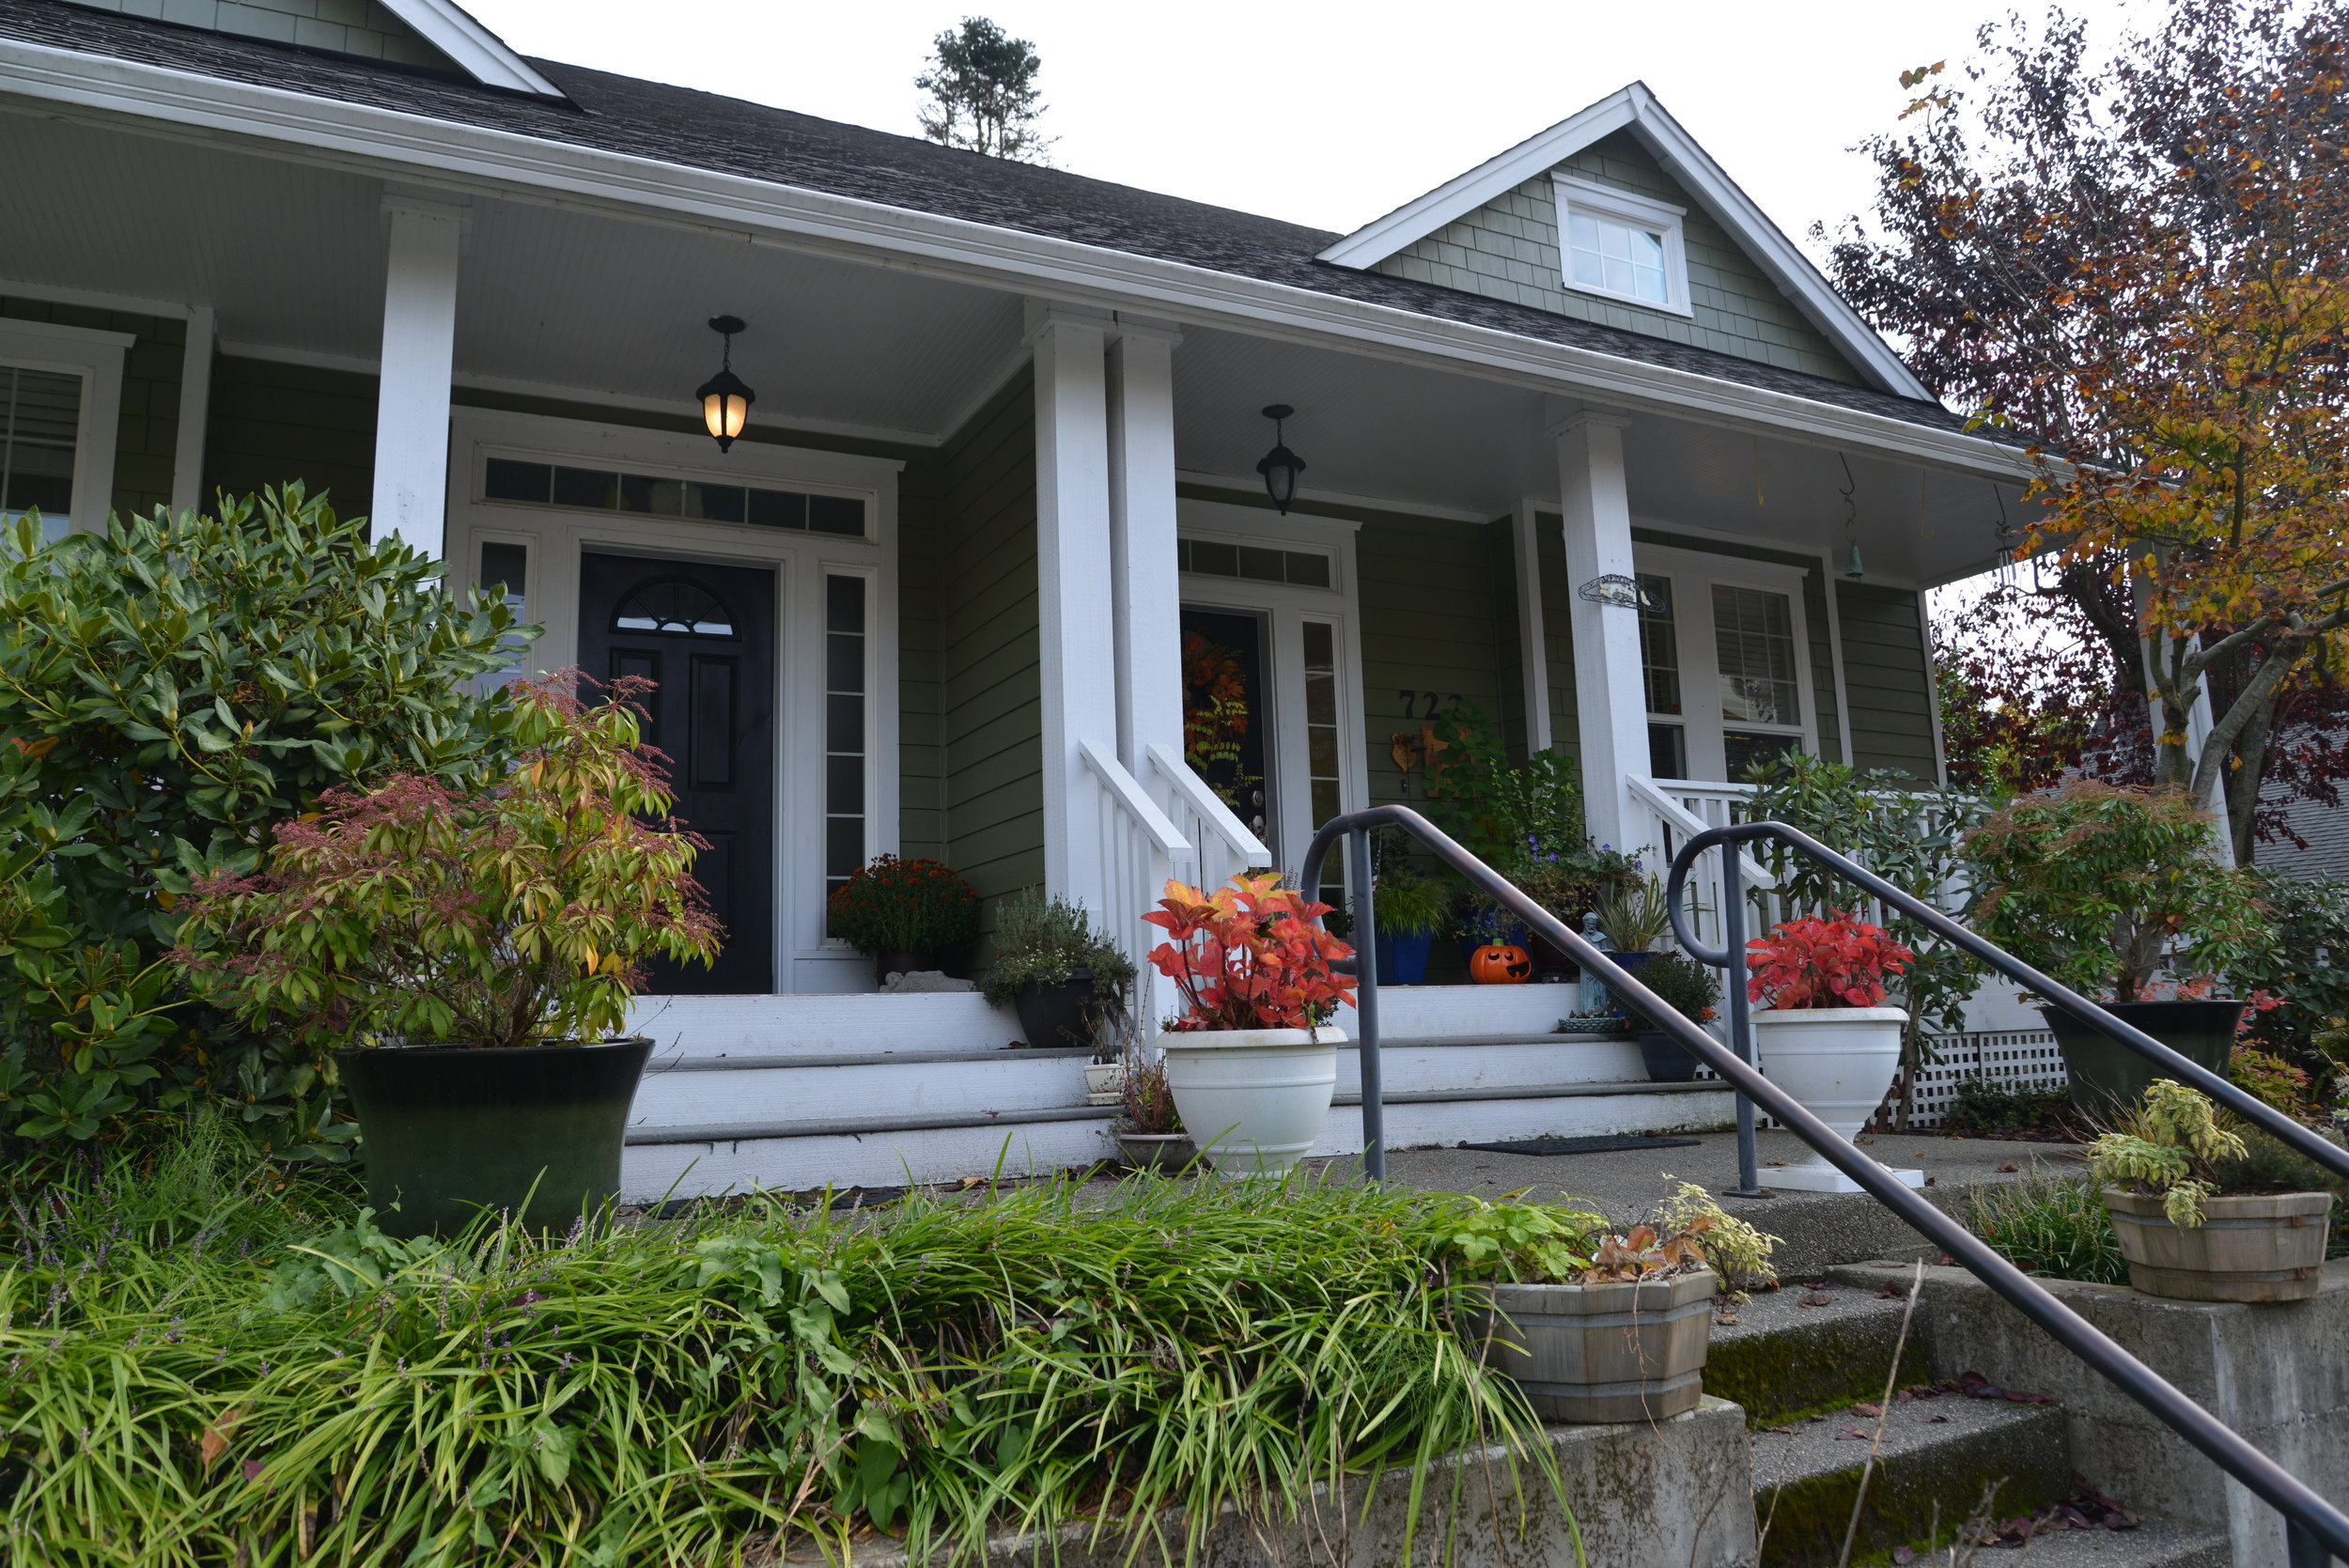 Briggs Village: Townhouses – One type of Missing Middle Housing. Olympia's code changes removed larger setbacks and other restrictions on townhouse development.